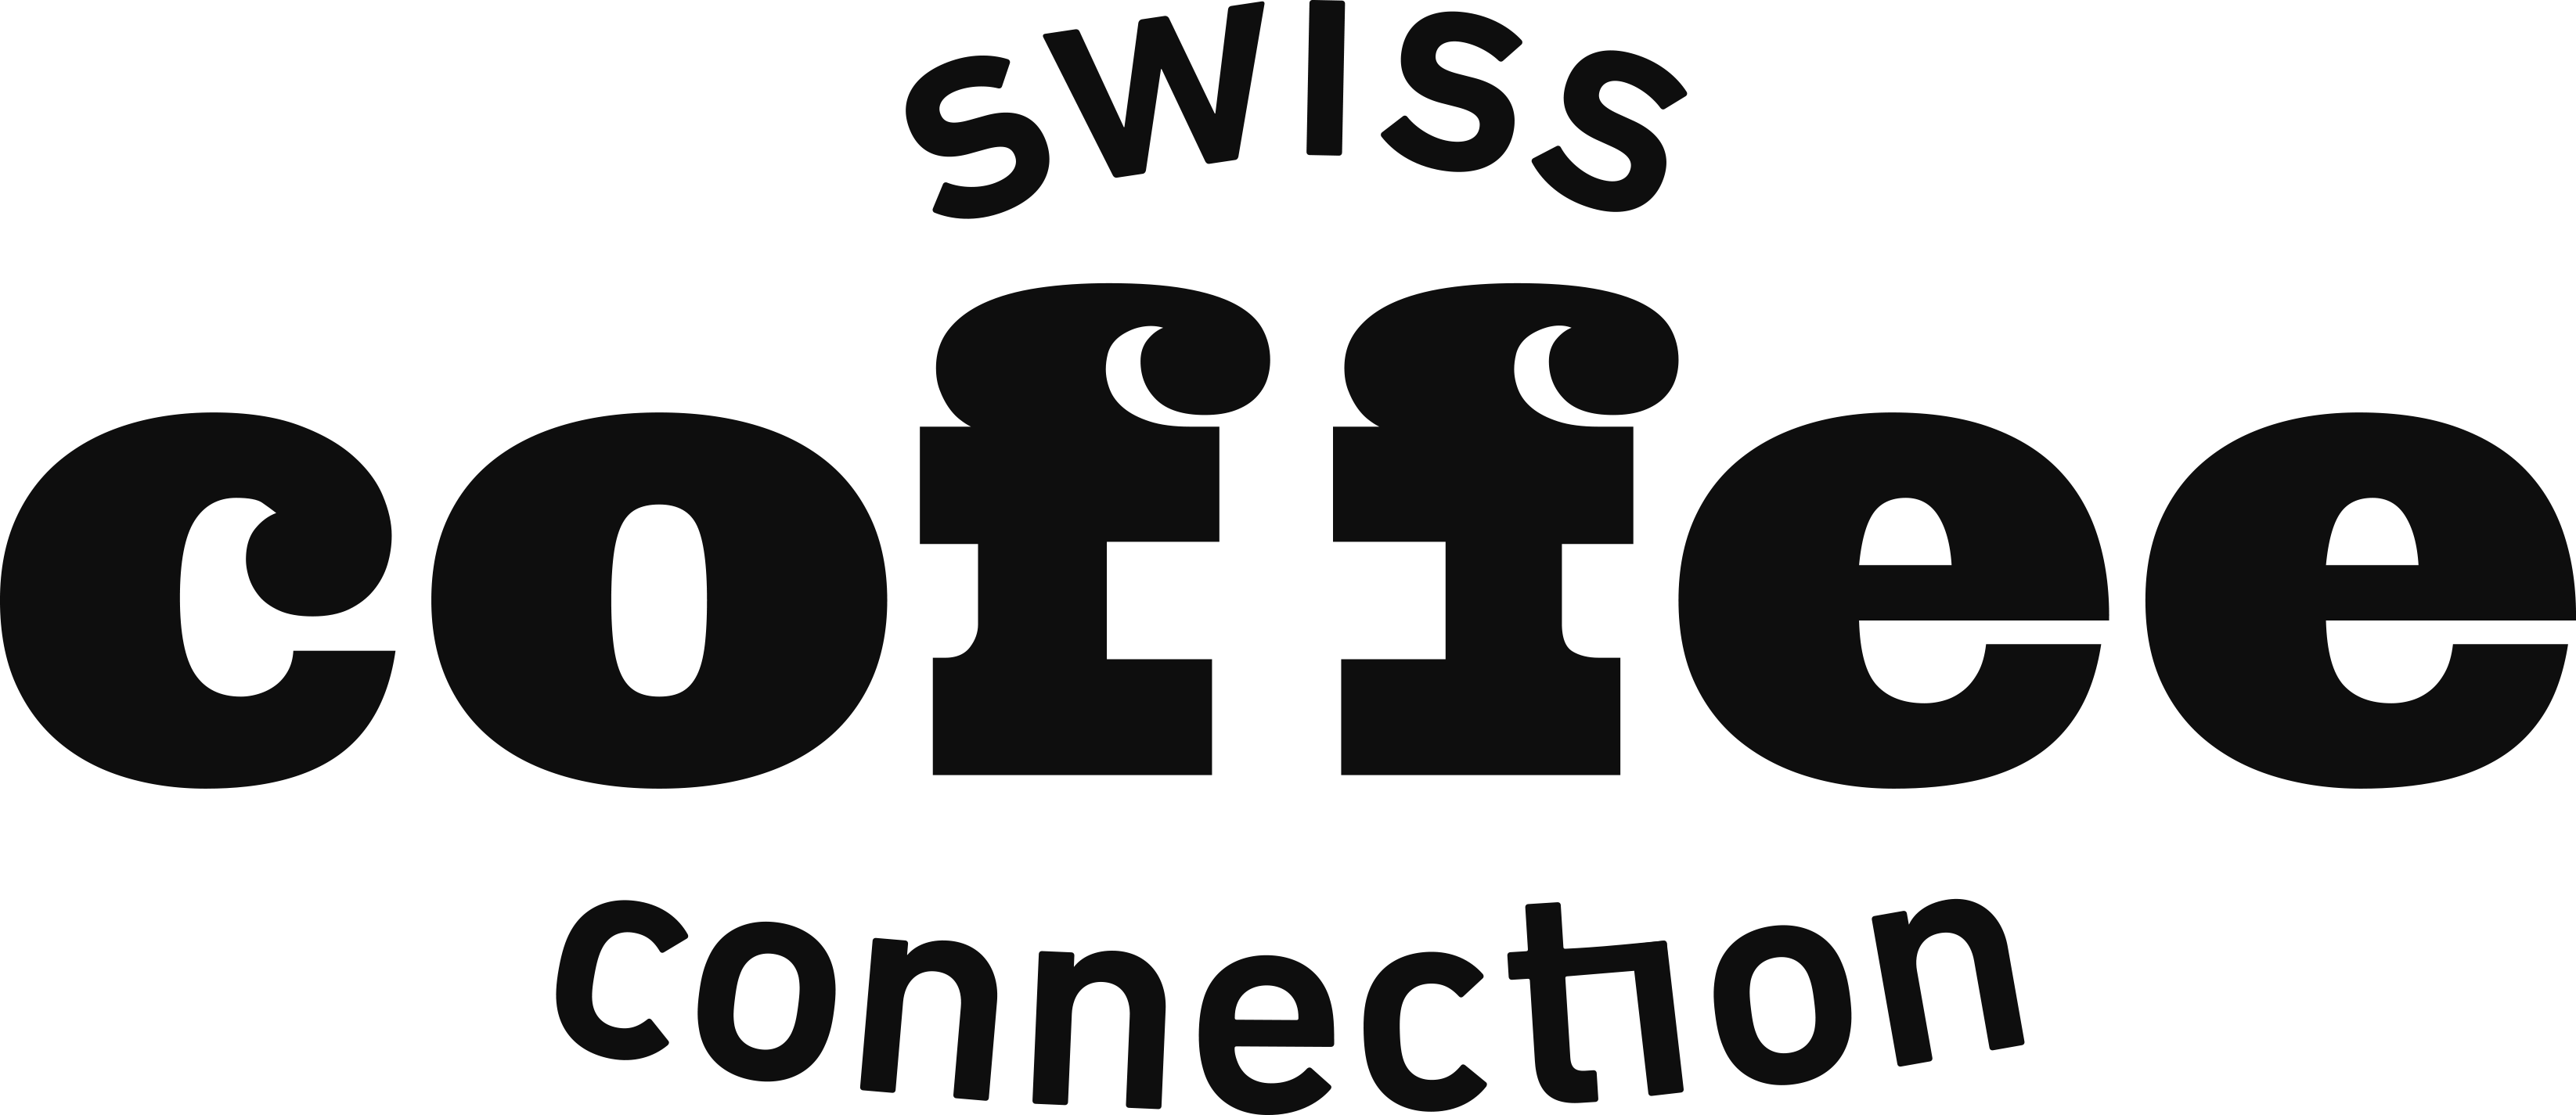 Swiss Coffee Connection